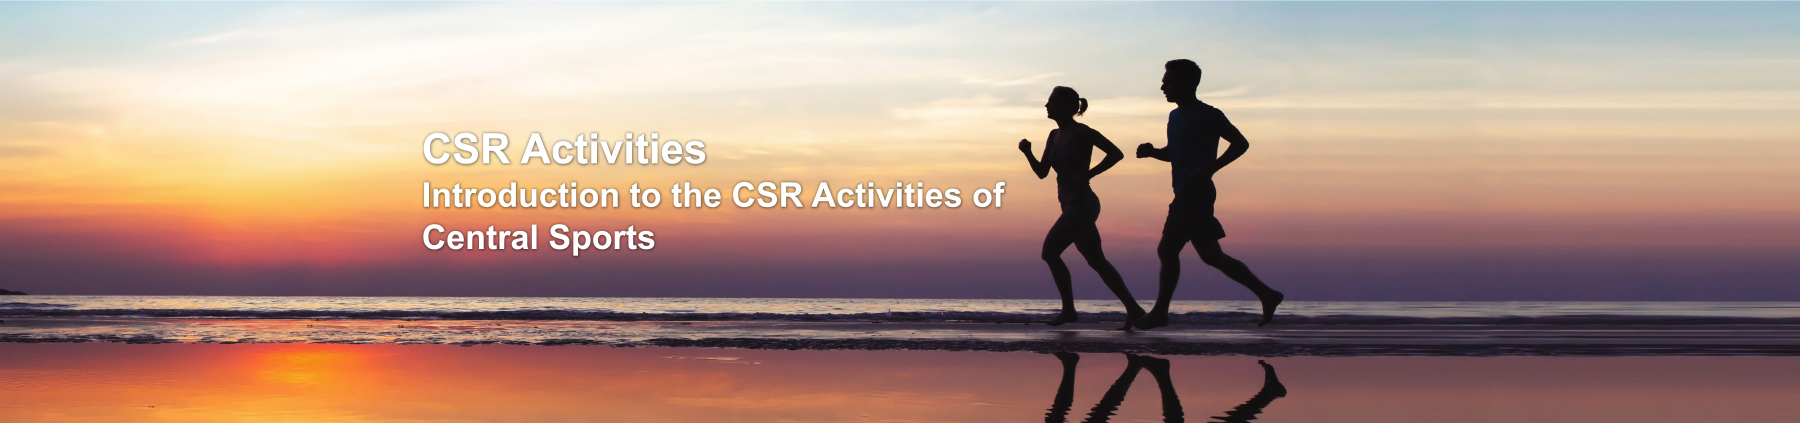 CSR Activities introduction to the CSR Activities of Central Sports